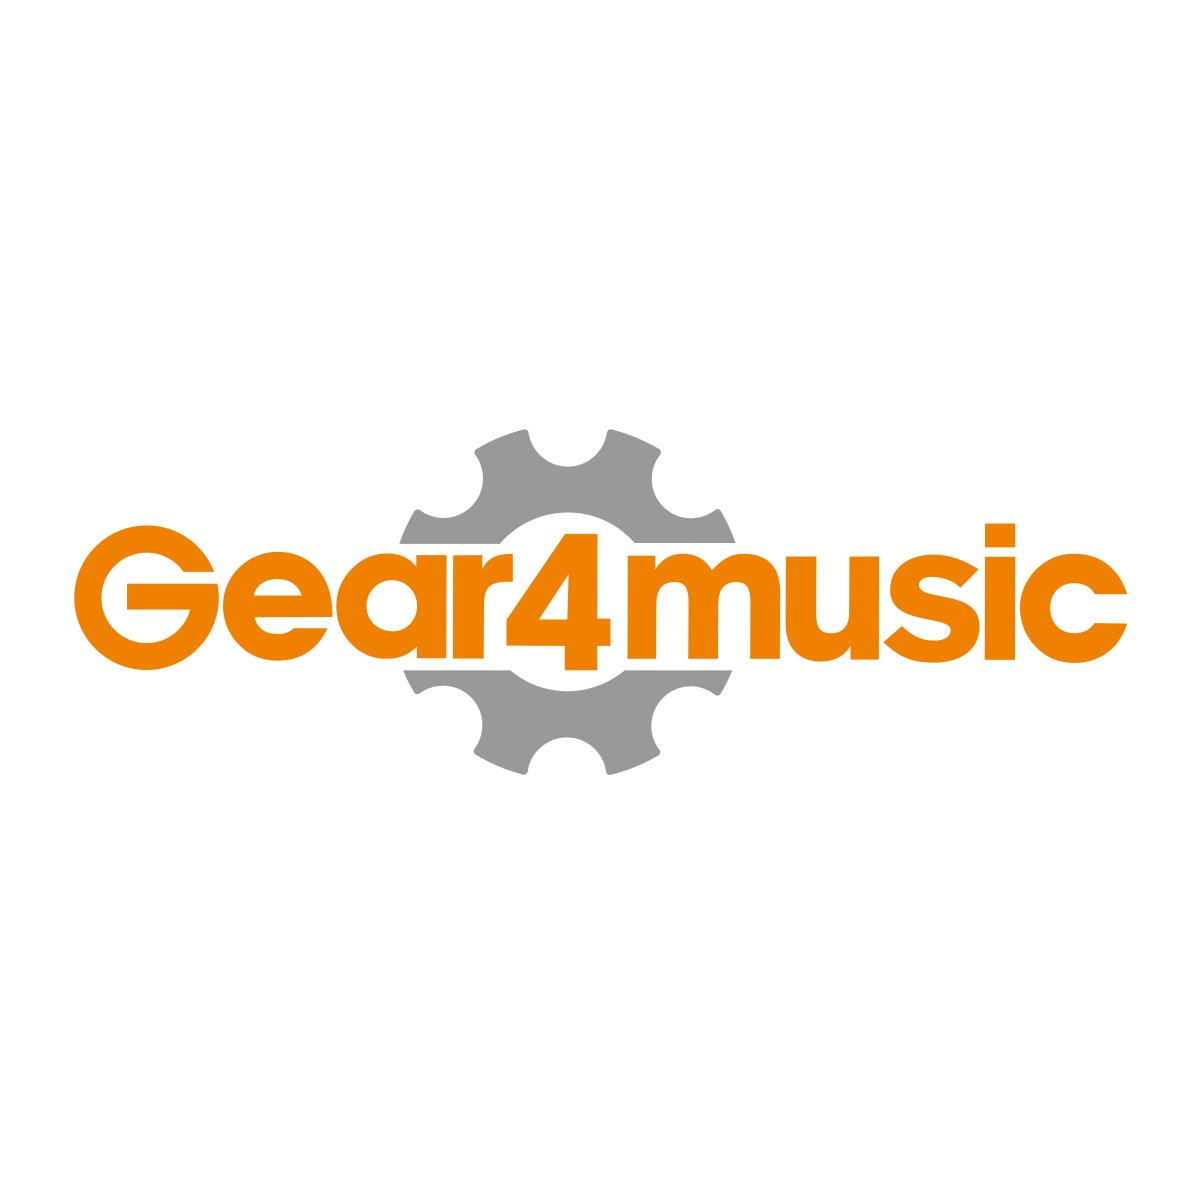 Shaker de Estudio de Gear4music - Metal